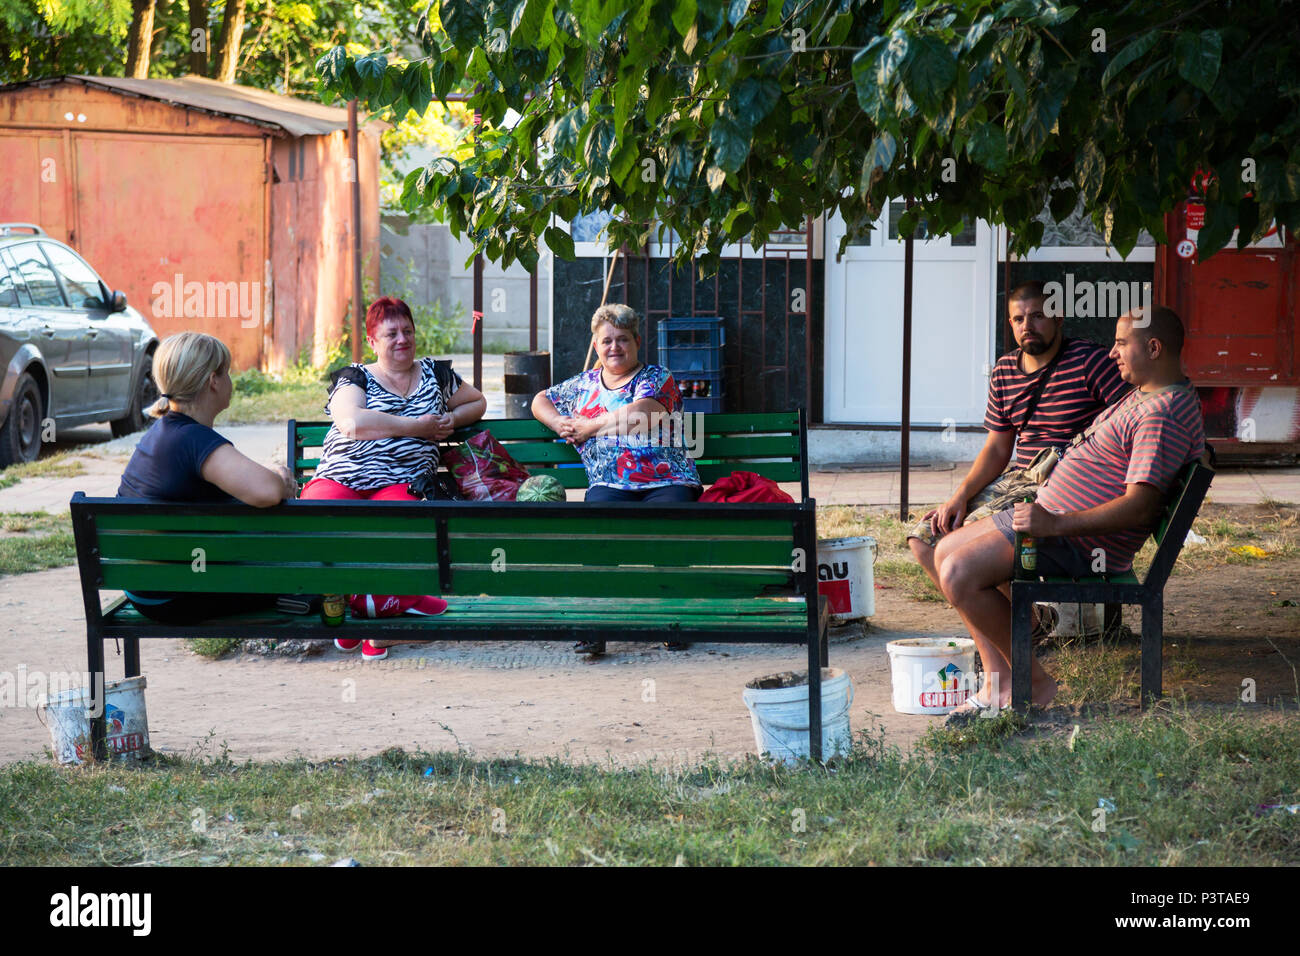 Republic of Moldova, Chisinau - Neighbors sit together on benches after work - Stock Image